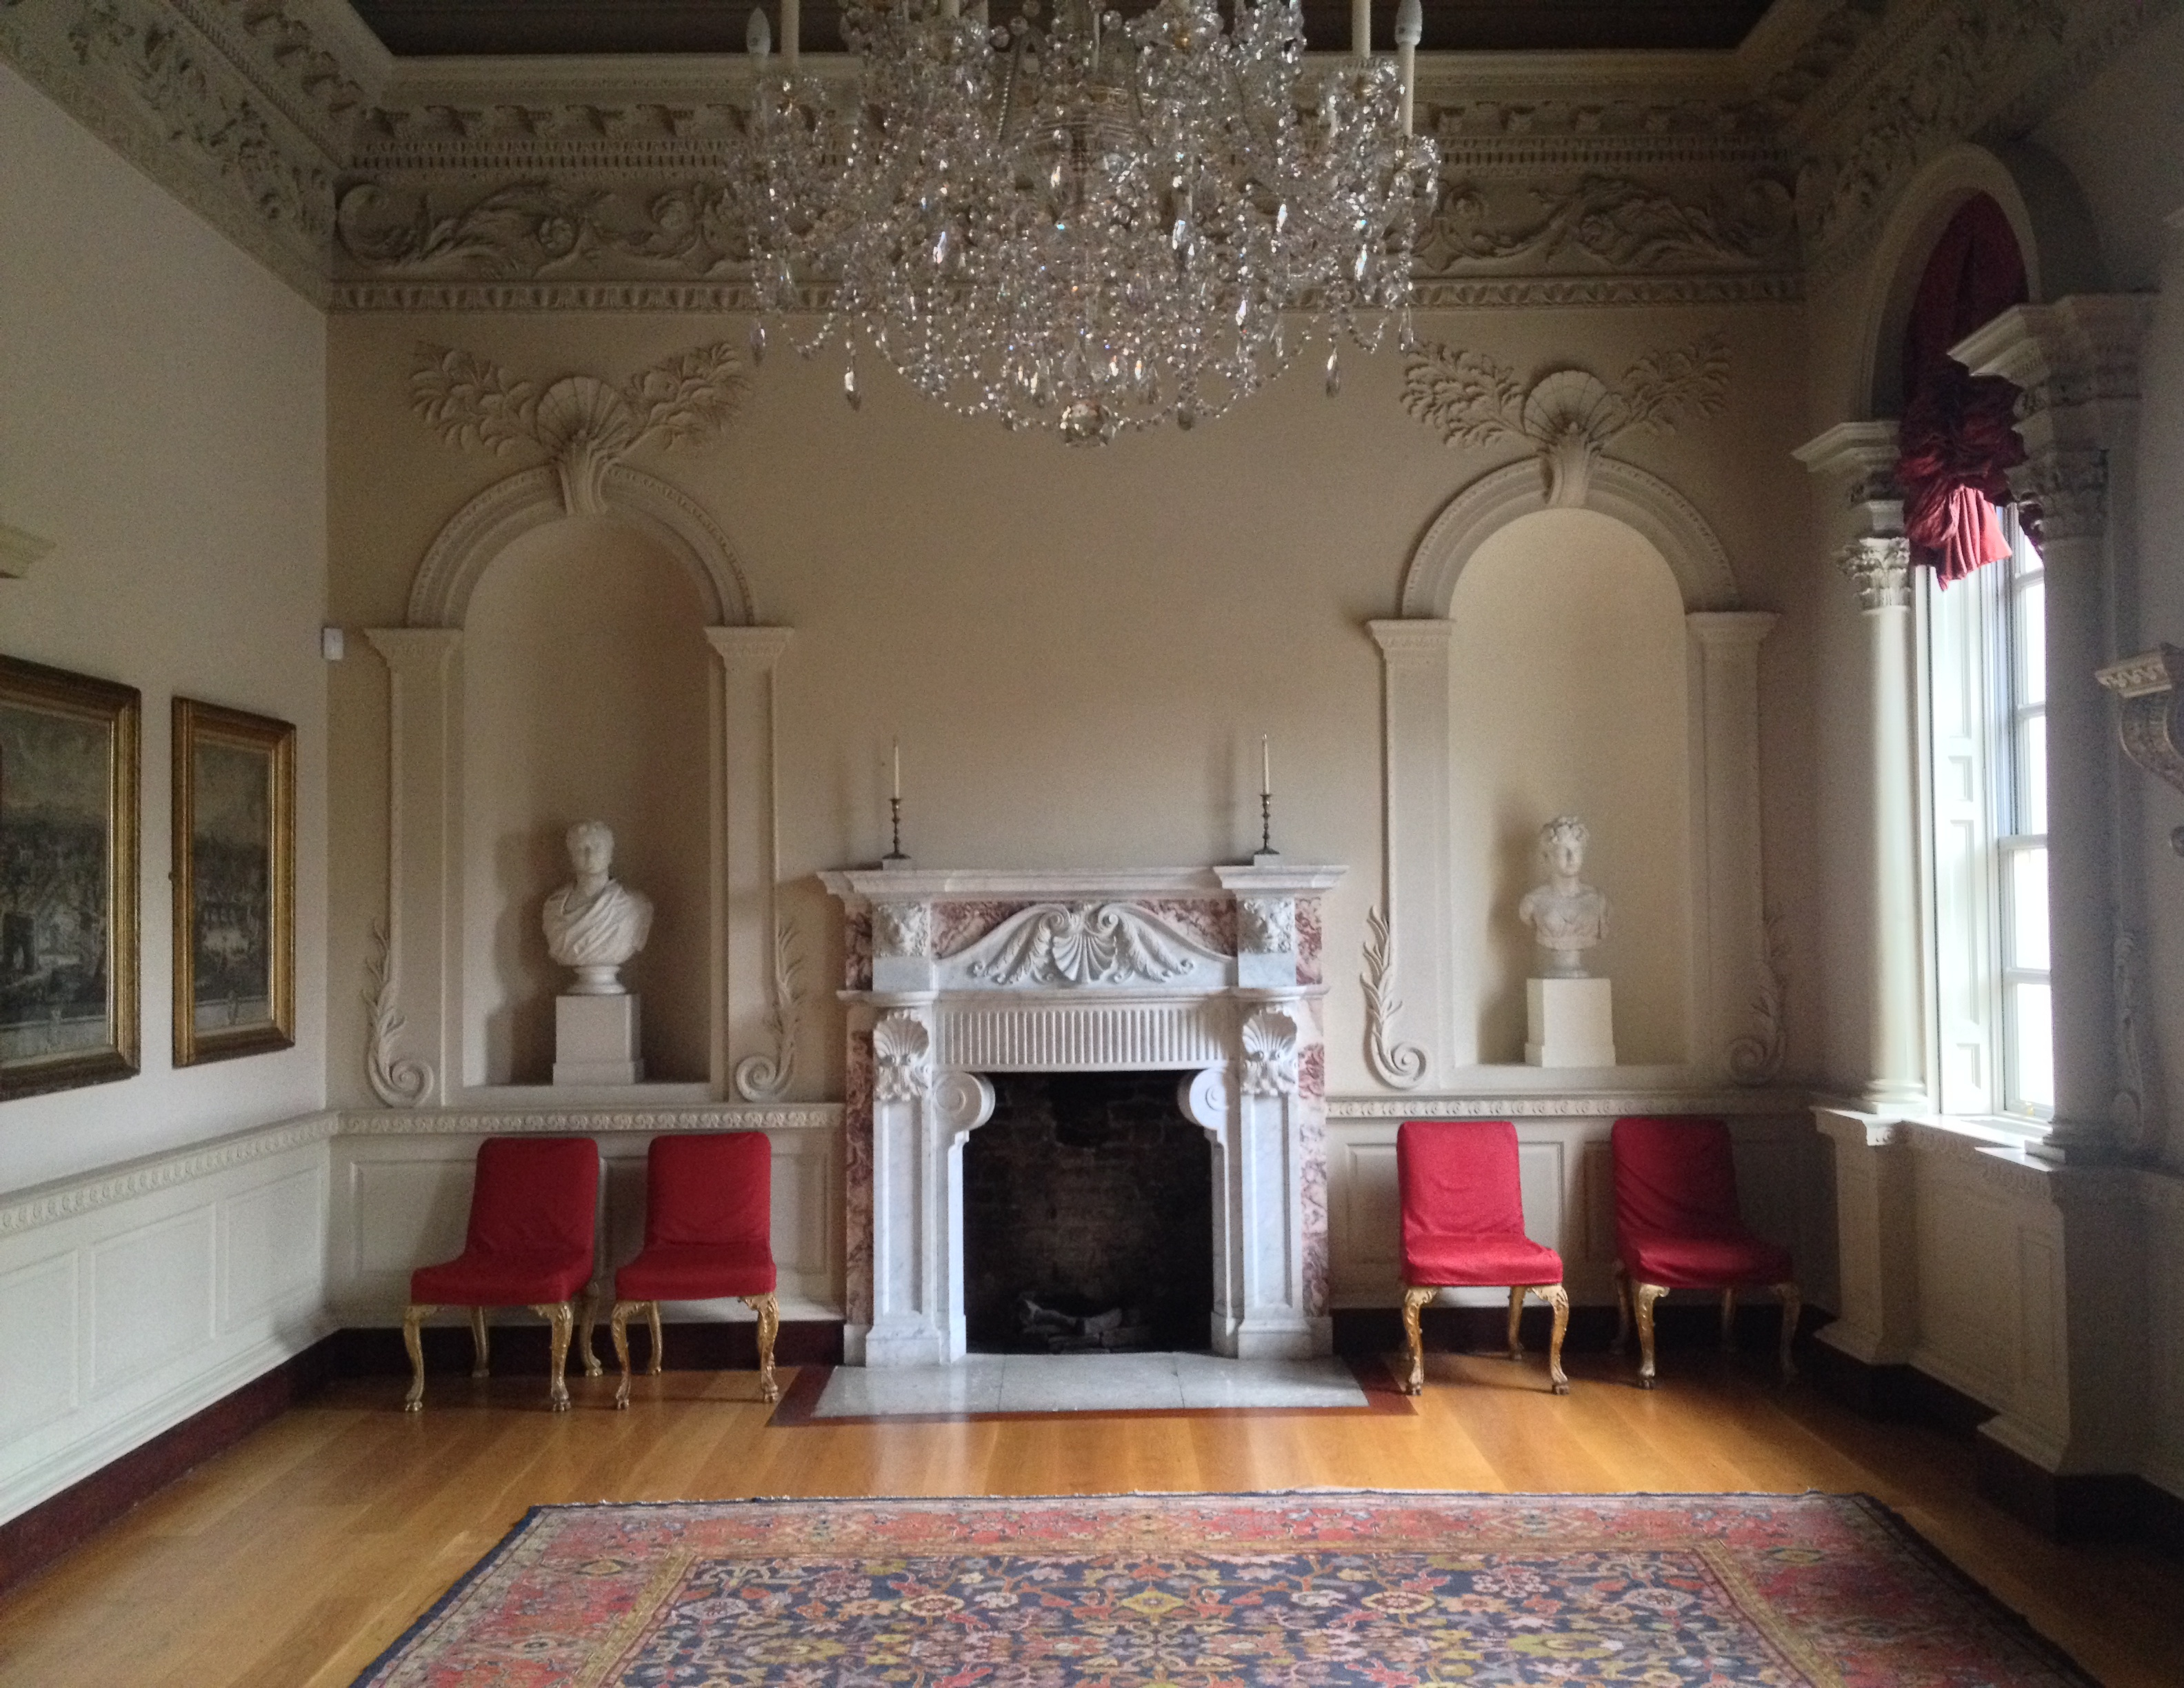 The most beautiful room in ireland the irish aesthete - Beautiful rooms ...